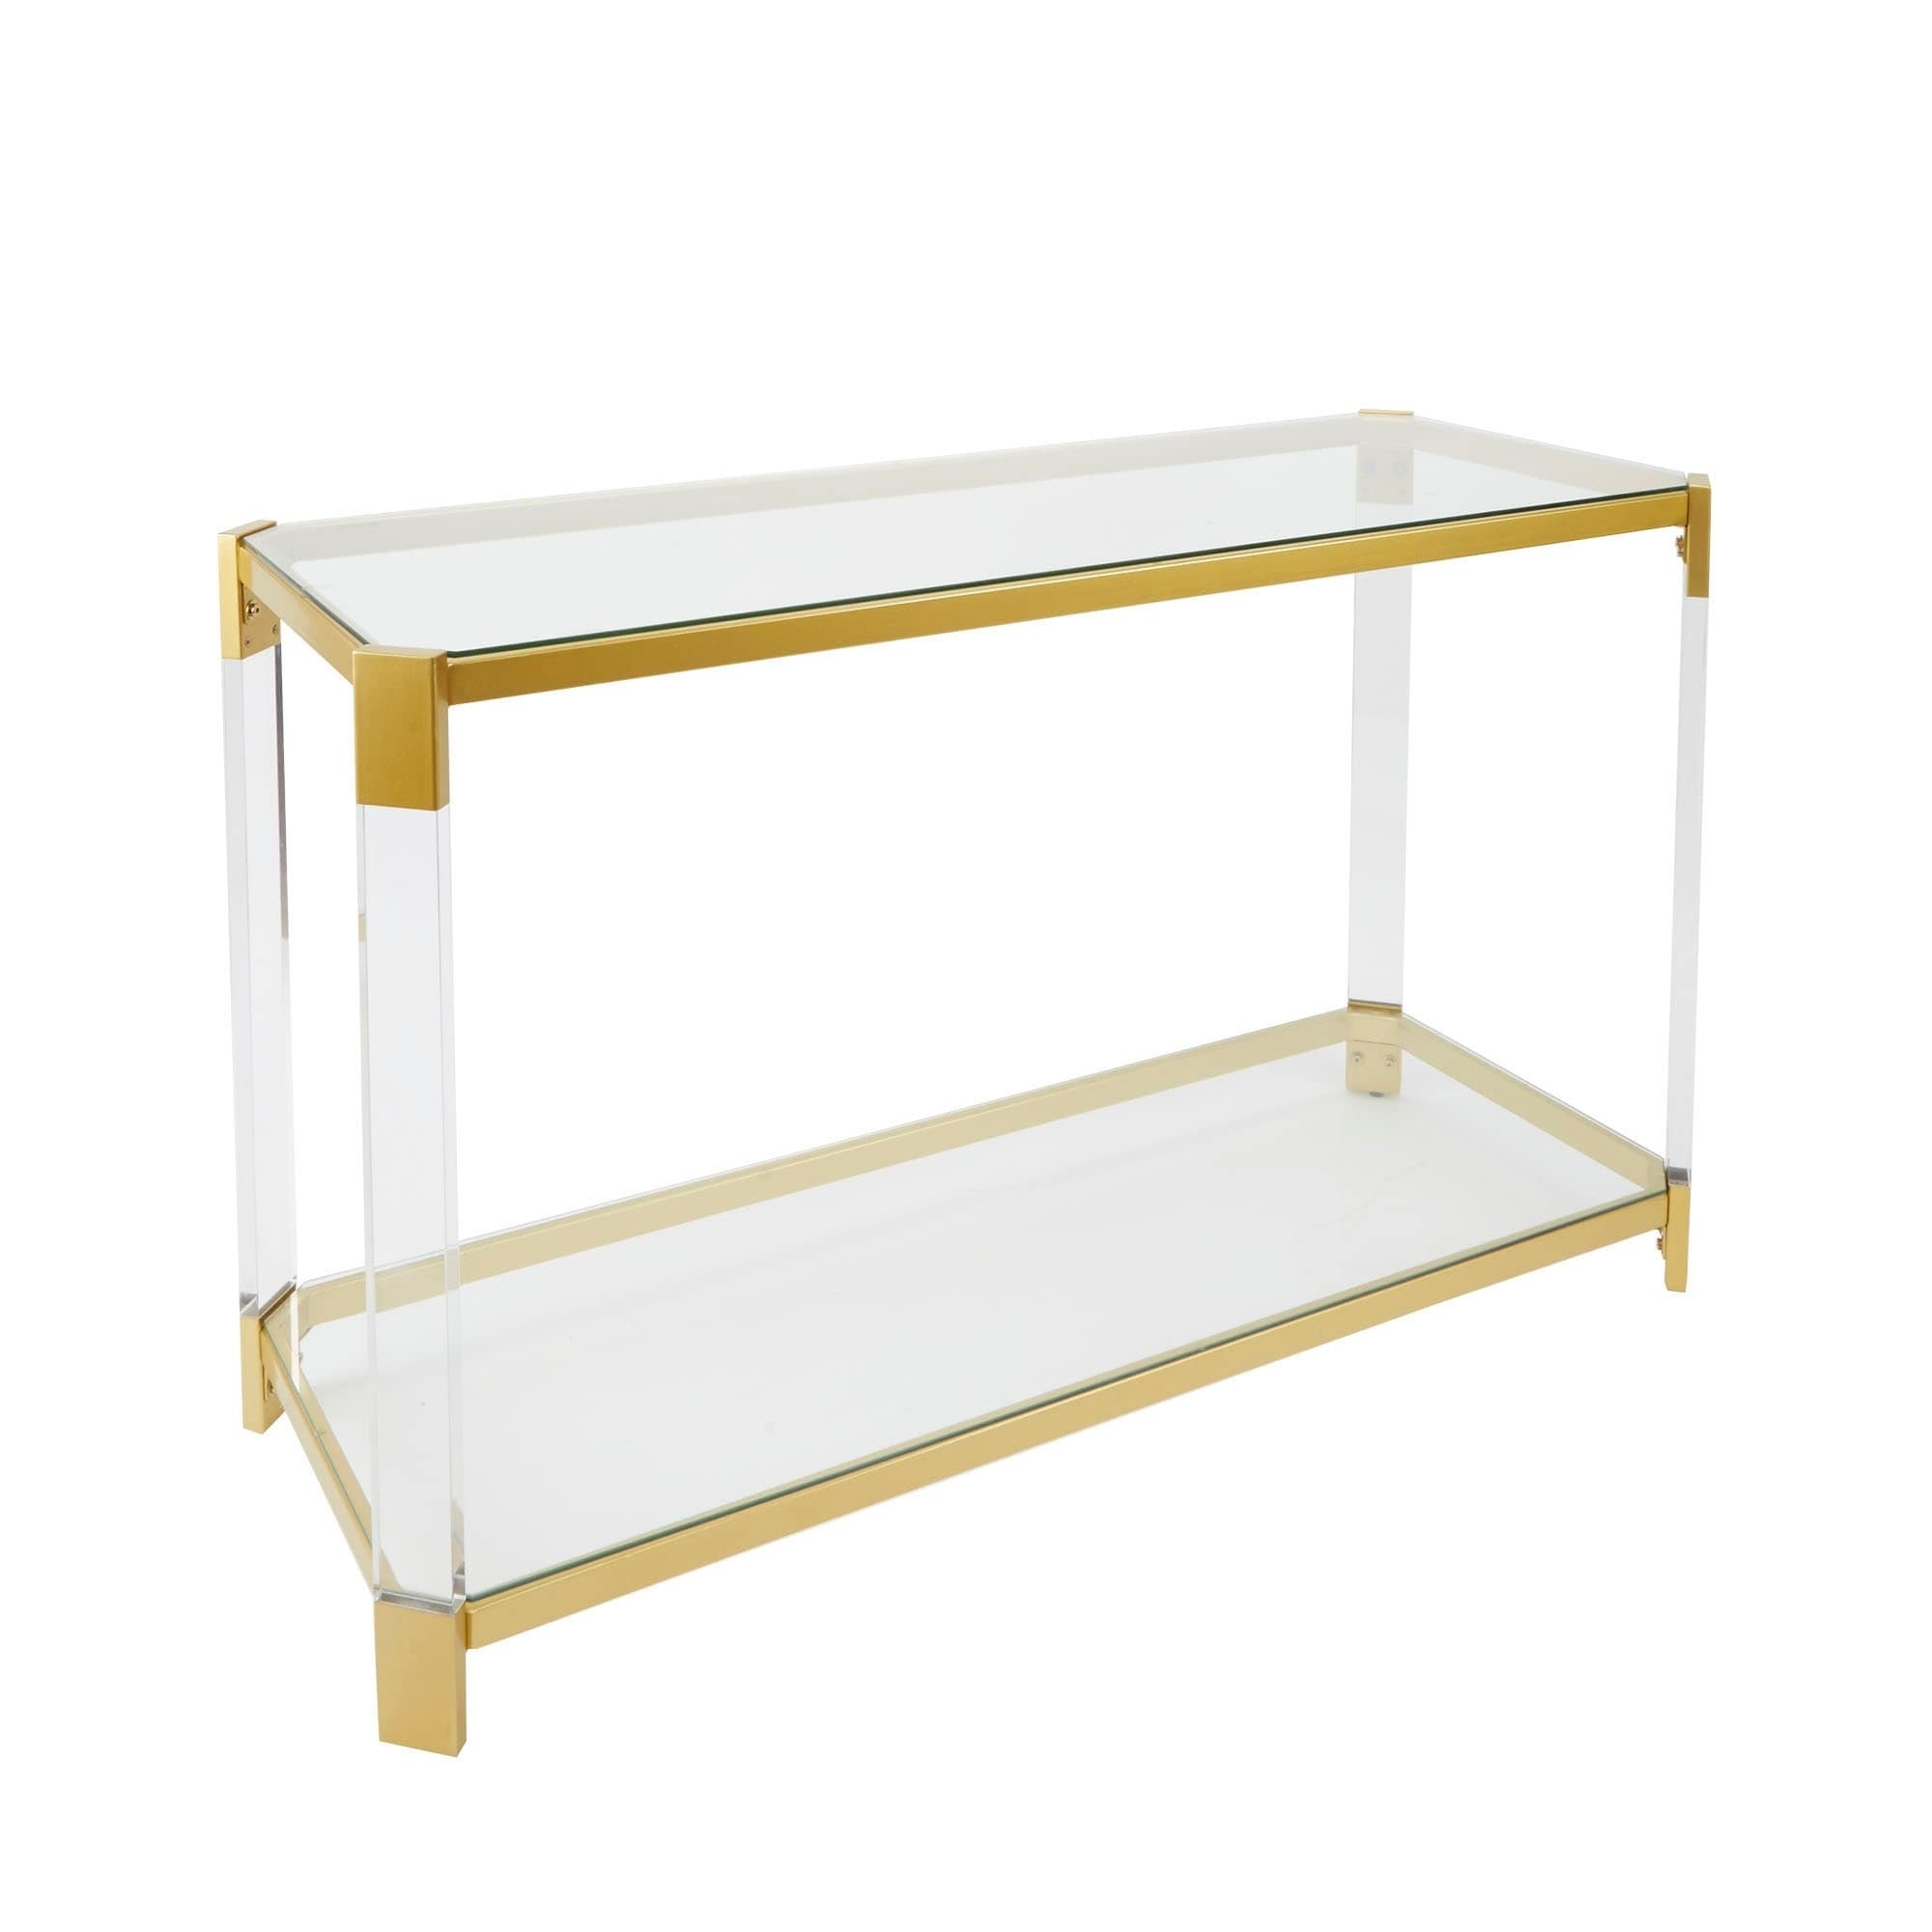 Glass Top Console Table Details About Huxley Goldtone Acrylic Console Table With Glass Top